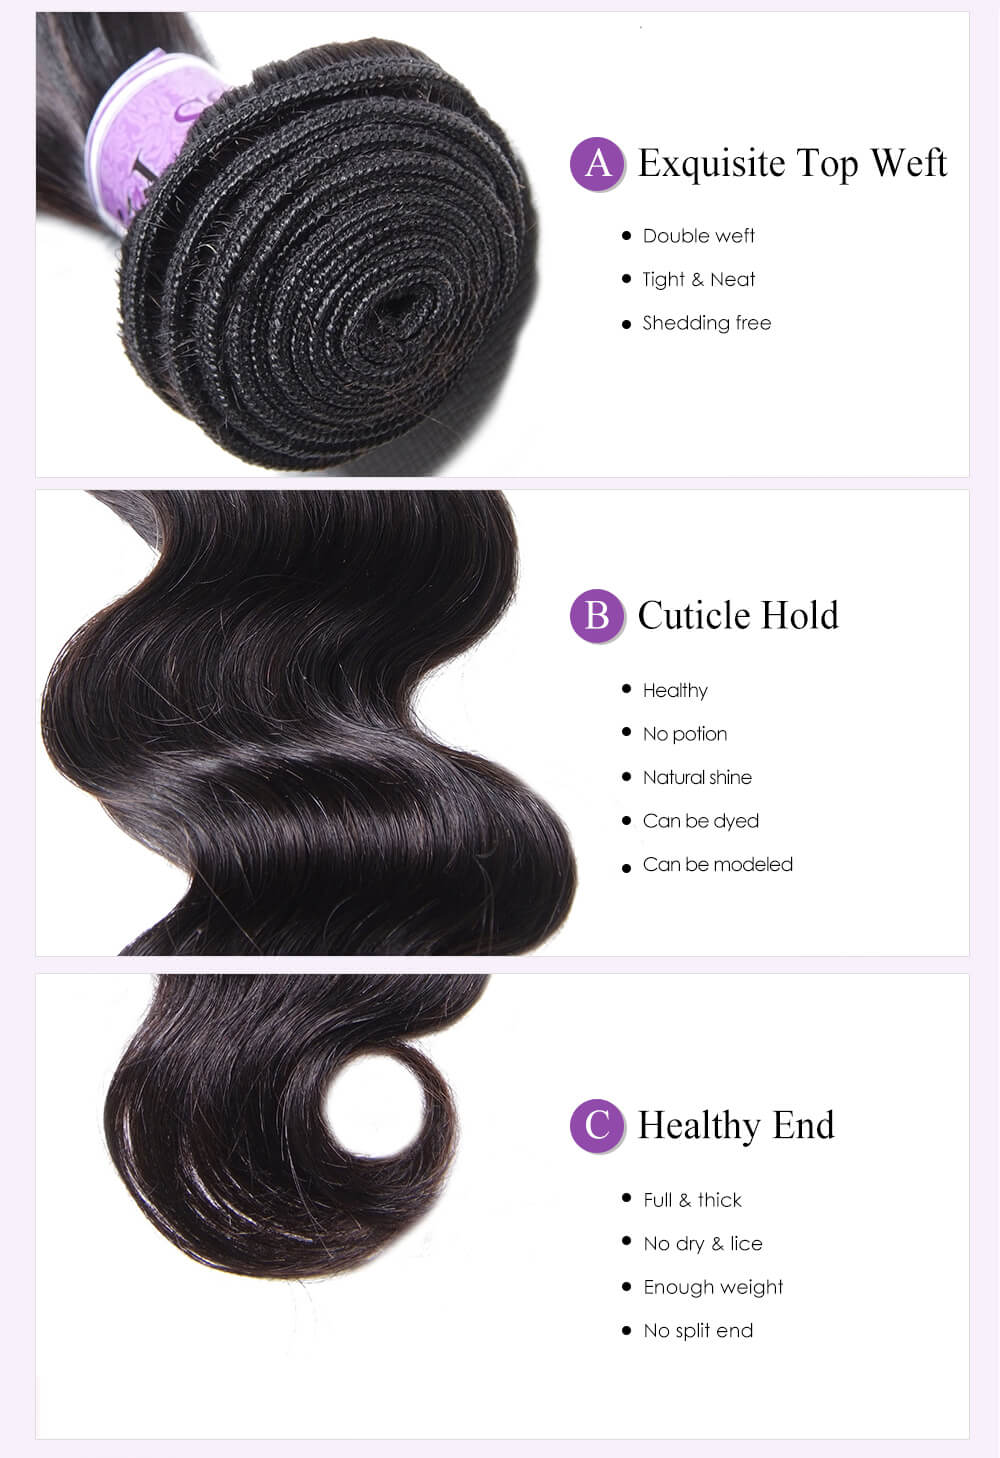 Unice kysiss Peruvian body wave 3 bundles hair